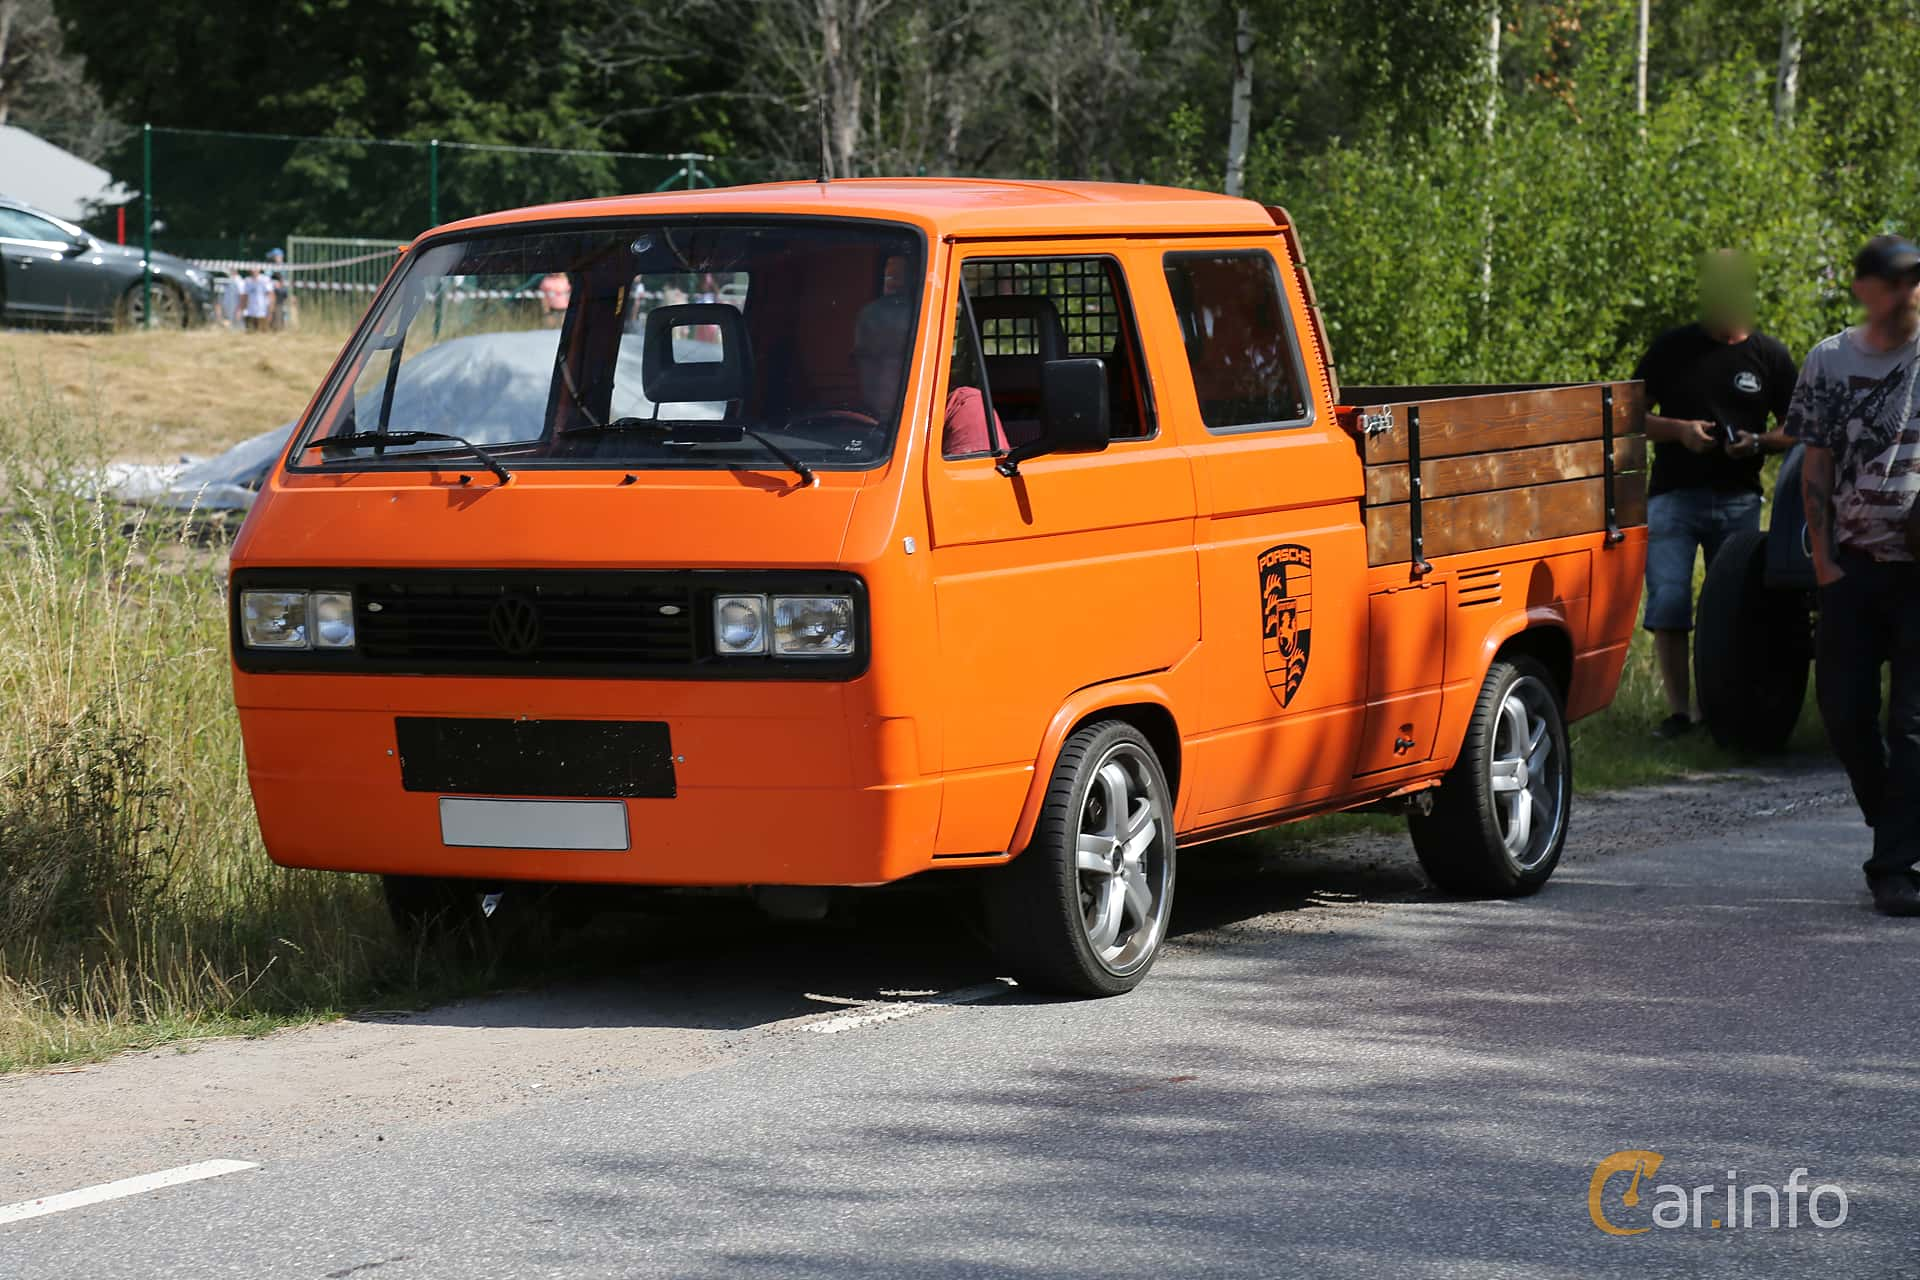 Volkswagen Transporter Chassi 2.1 Manual, 112hp, 1989 at A-bombers - Old Style Weekend Backamo 2019